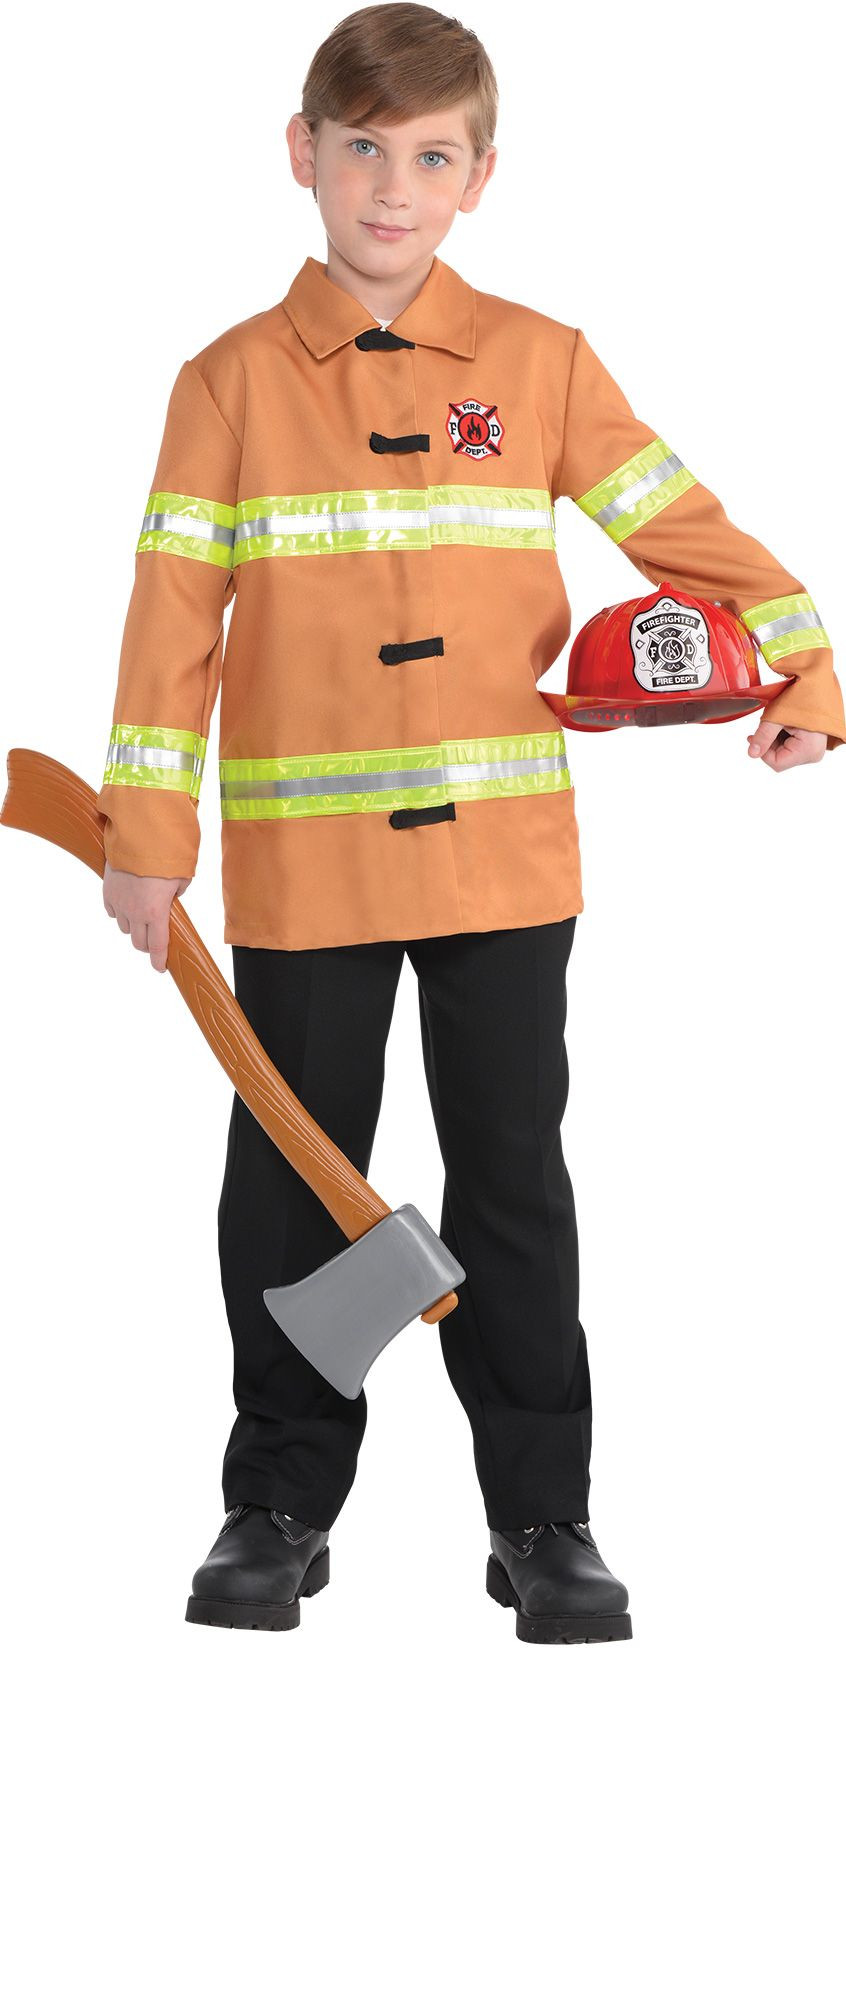 Party City Costumes Kids Boys  Boys Firefighter Costume Accessories Party City